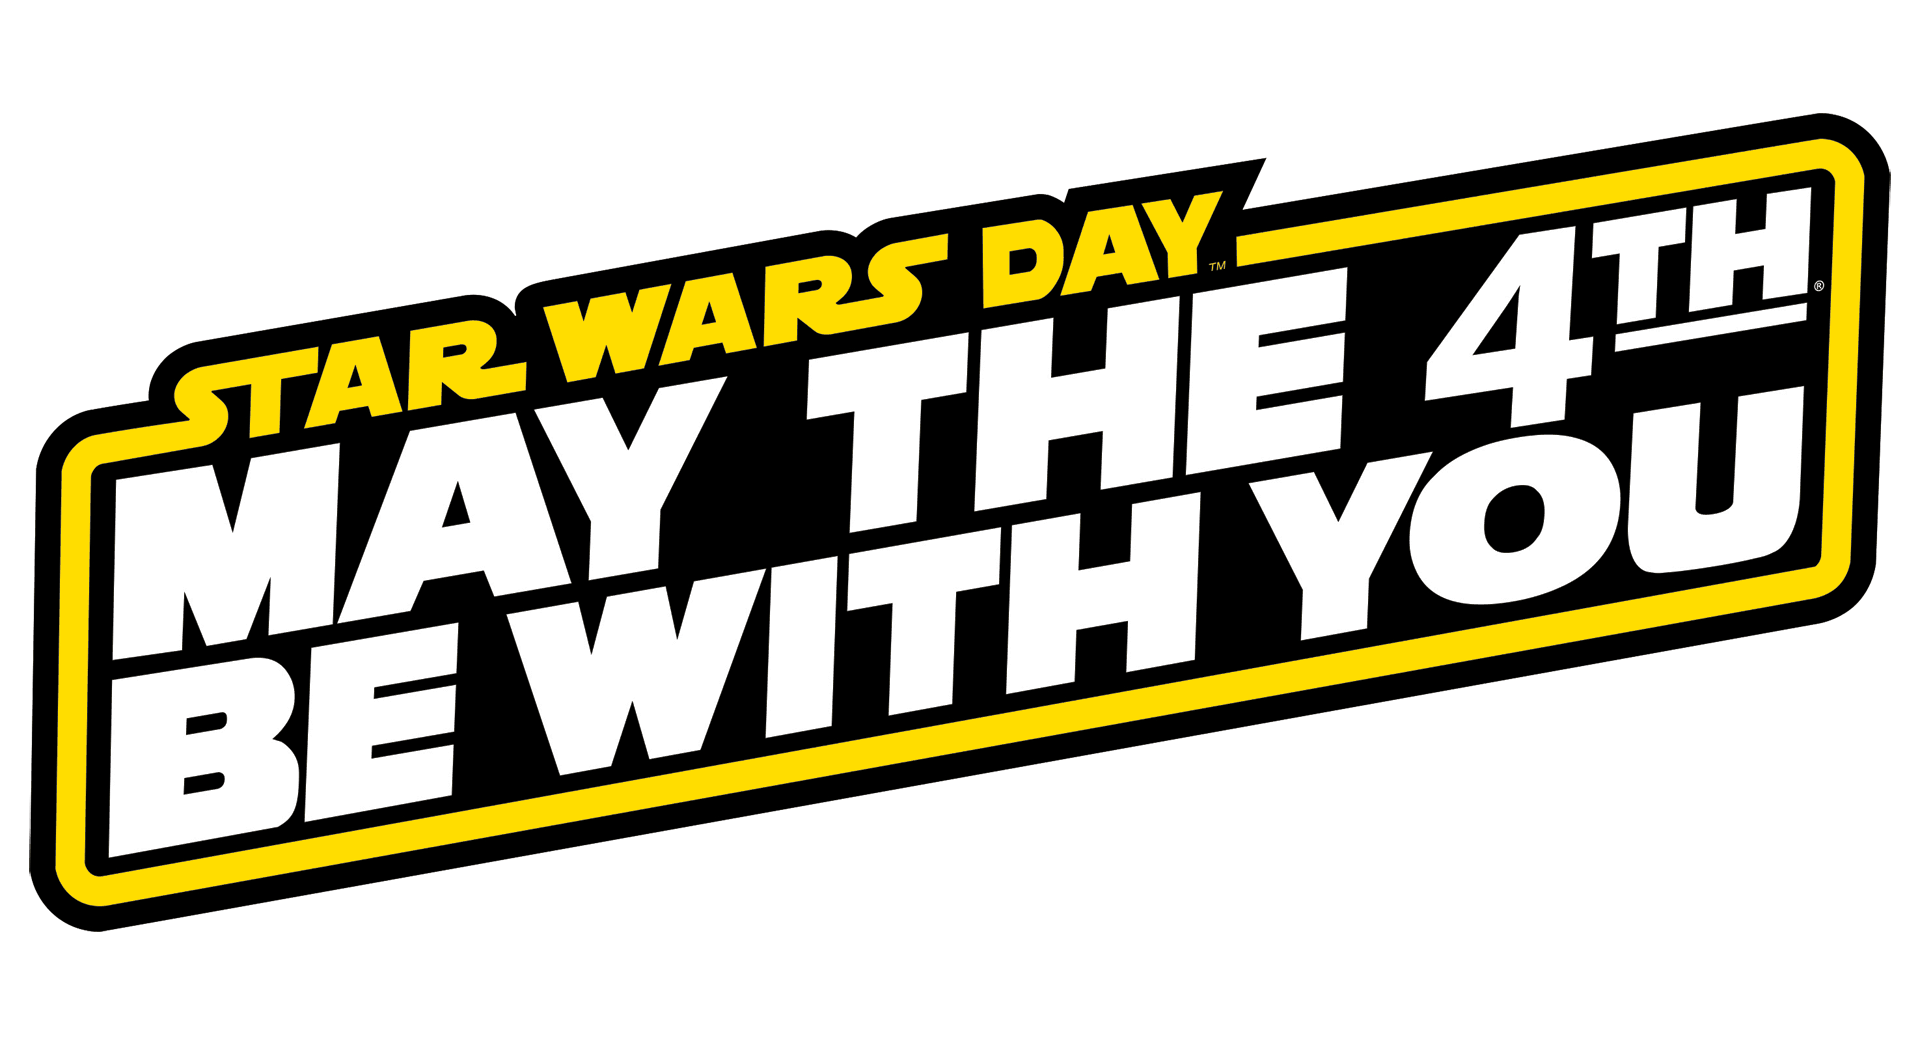 Star wars day clipart image freeuse download Happy Star Wars™ Day from Zen Studios! – Zen Studios image freeuse download